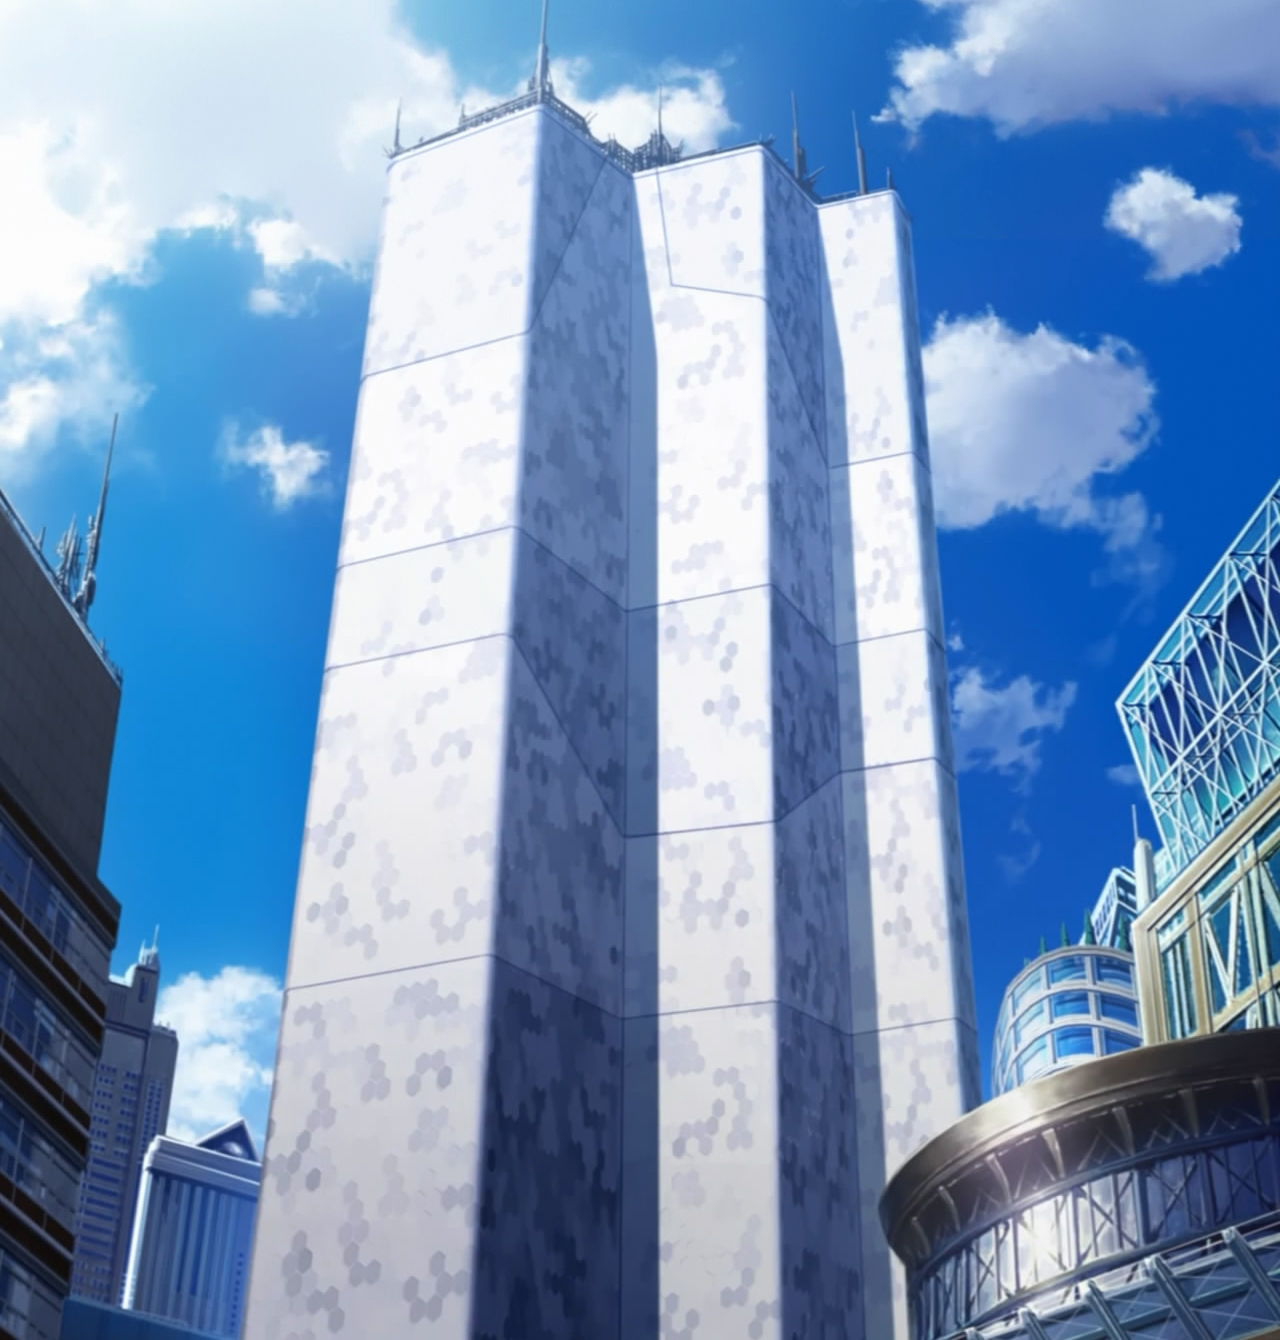 http://images.wikia.com/to-aru-majutsu-no-index/images/5/59/Windowless_BuildingDay.jpg